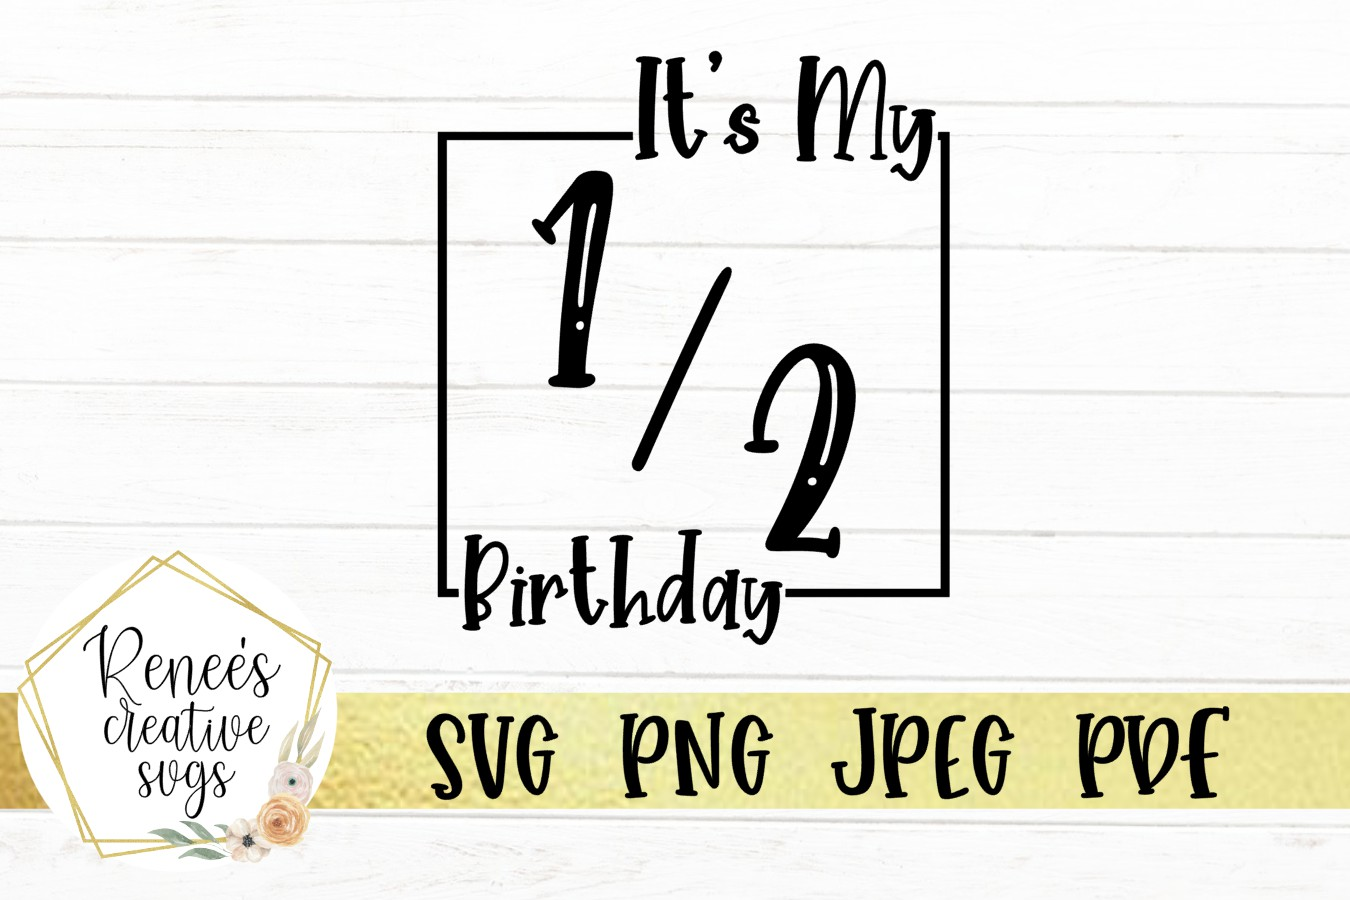 Its my 1/2 Birthday | Birthday SVG | SVG Cutting File example image 2